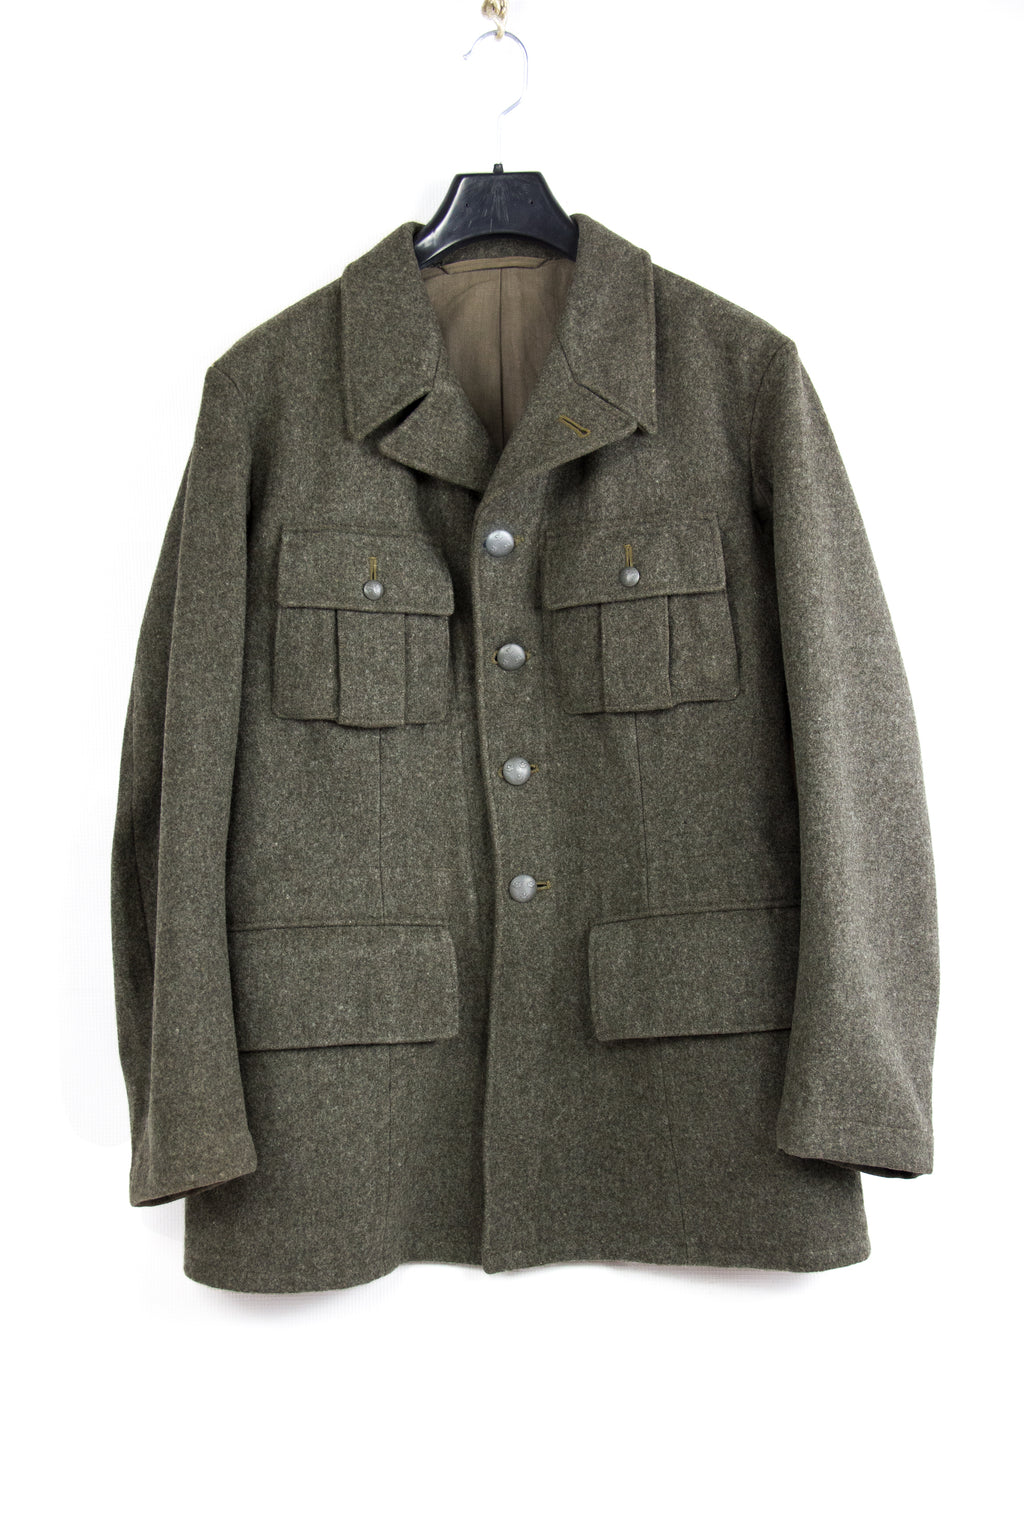 WW2 Swedish Military M39 Melton Wool Jacket, USA 38S - second_first